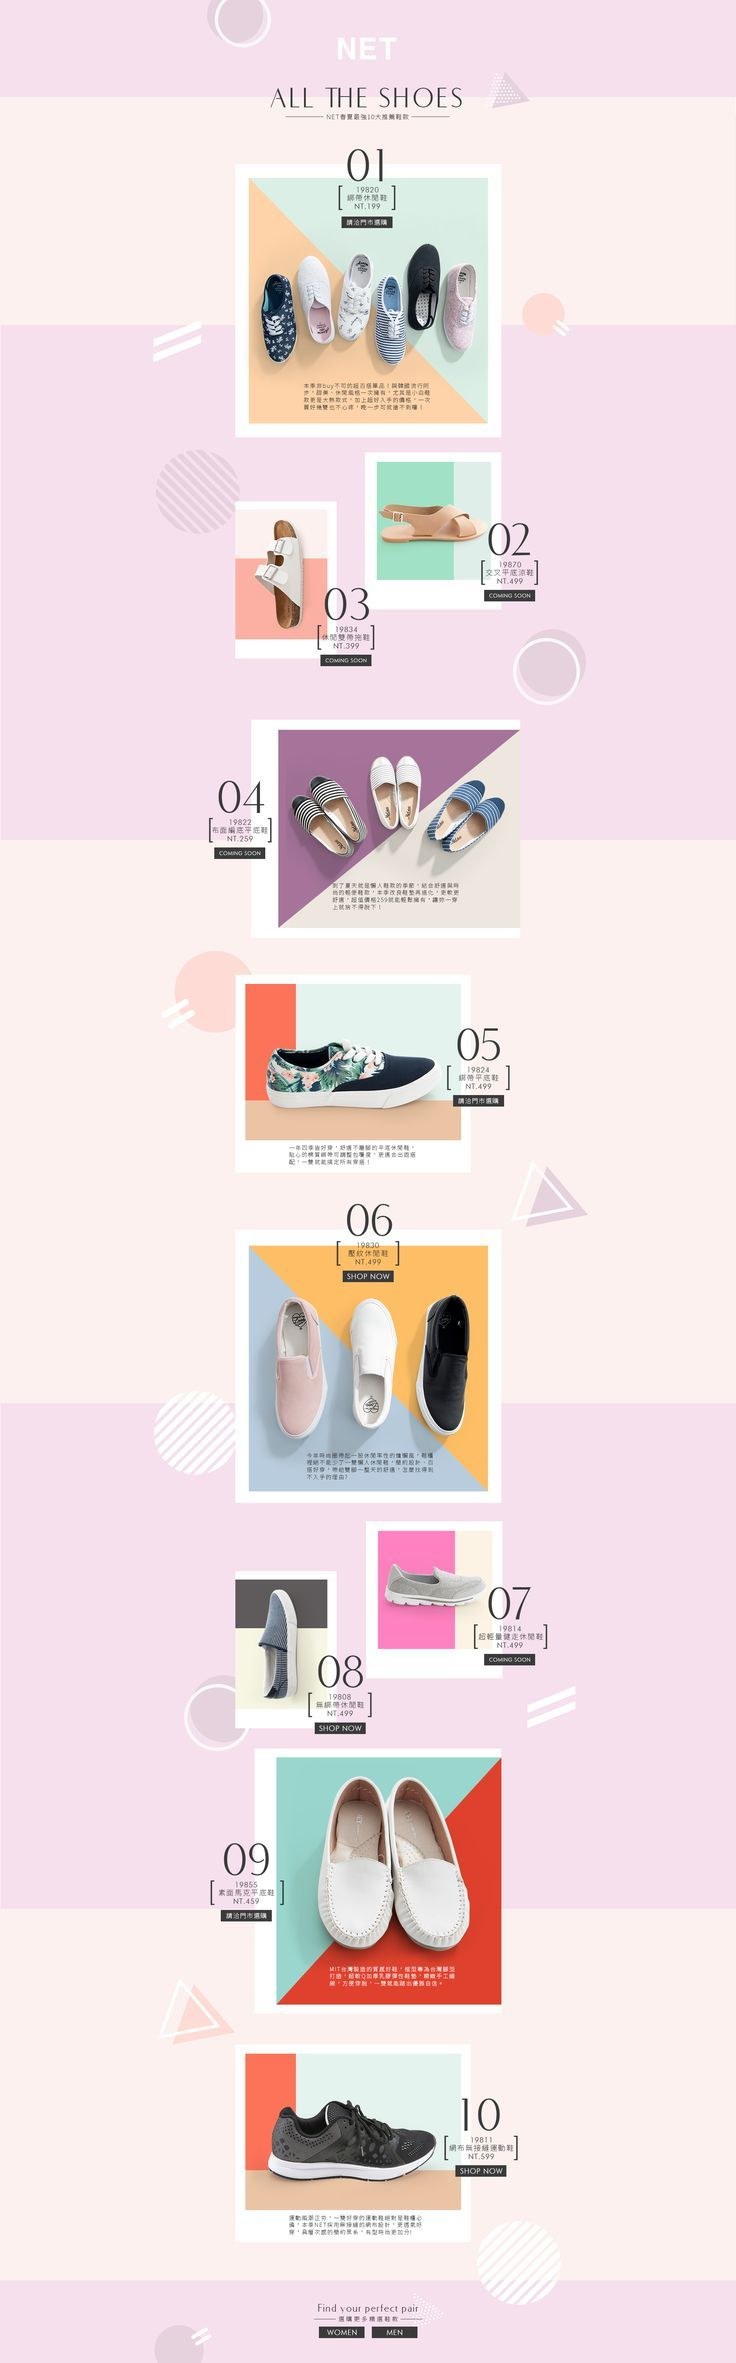 ALL THE SHOES-NET最強10大推薦鞋款 on Behance: